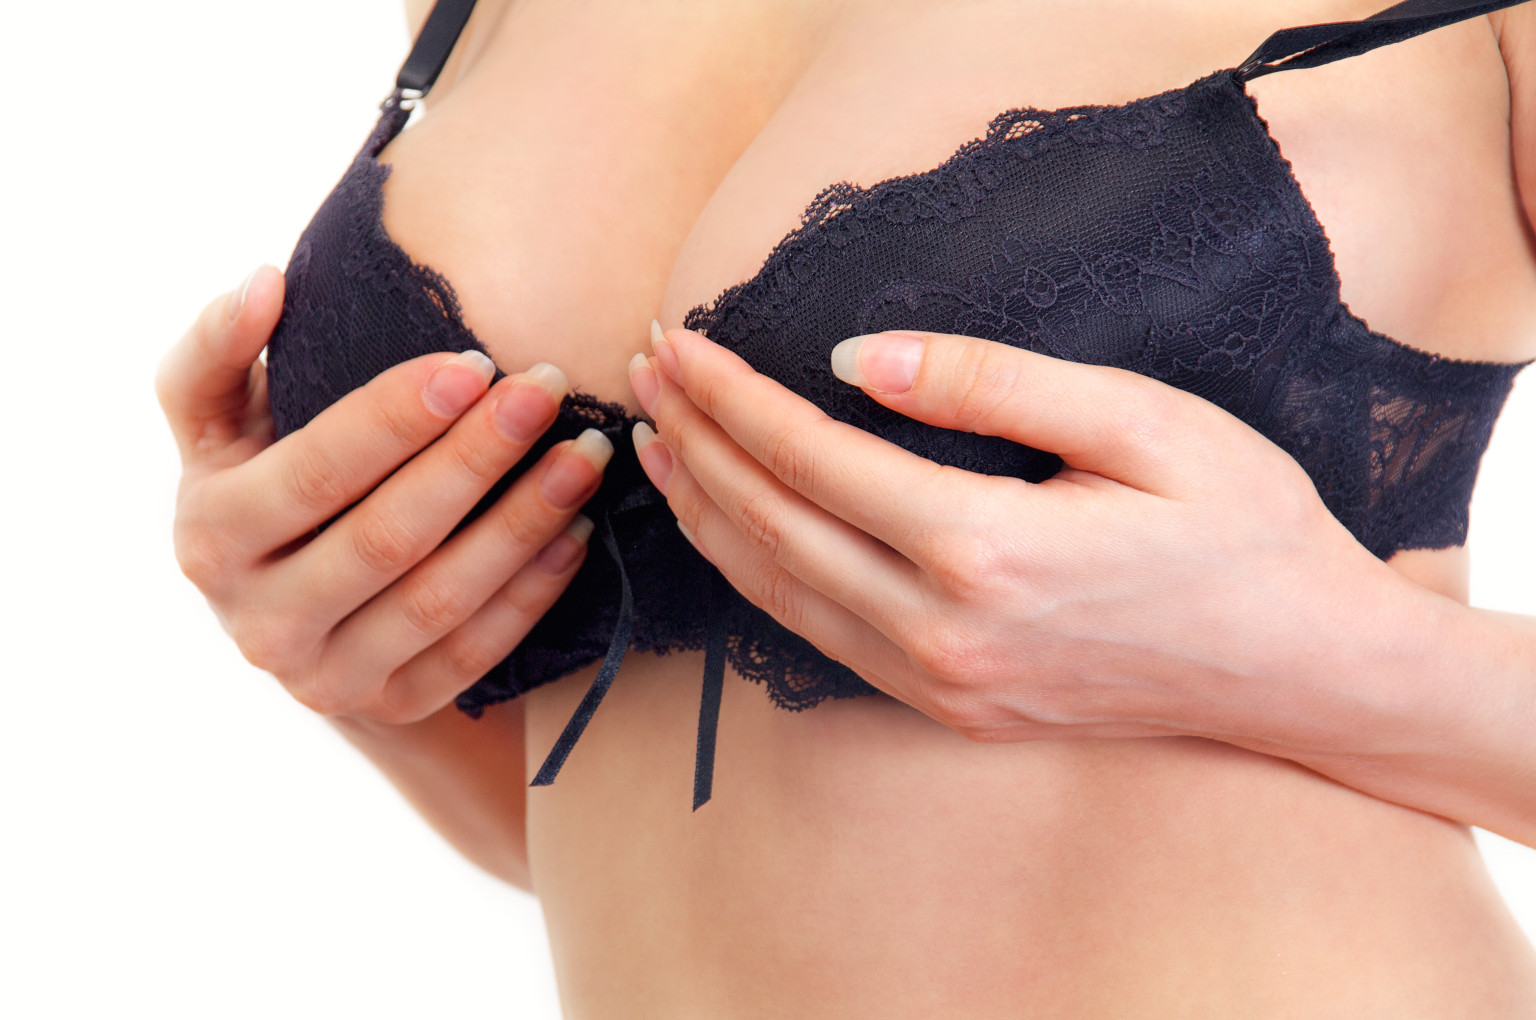 normal size breast